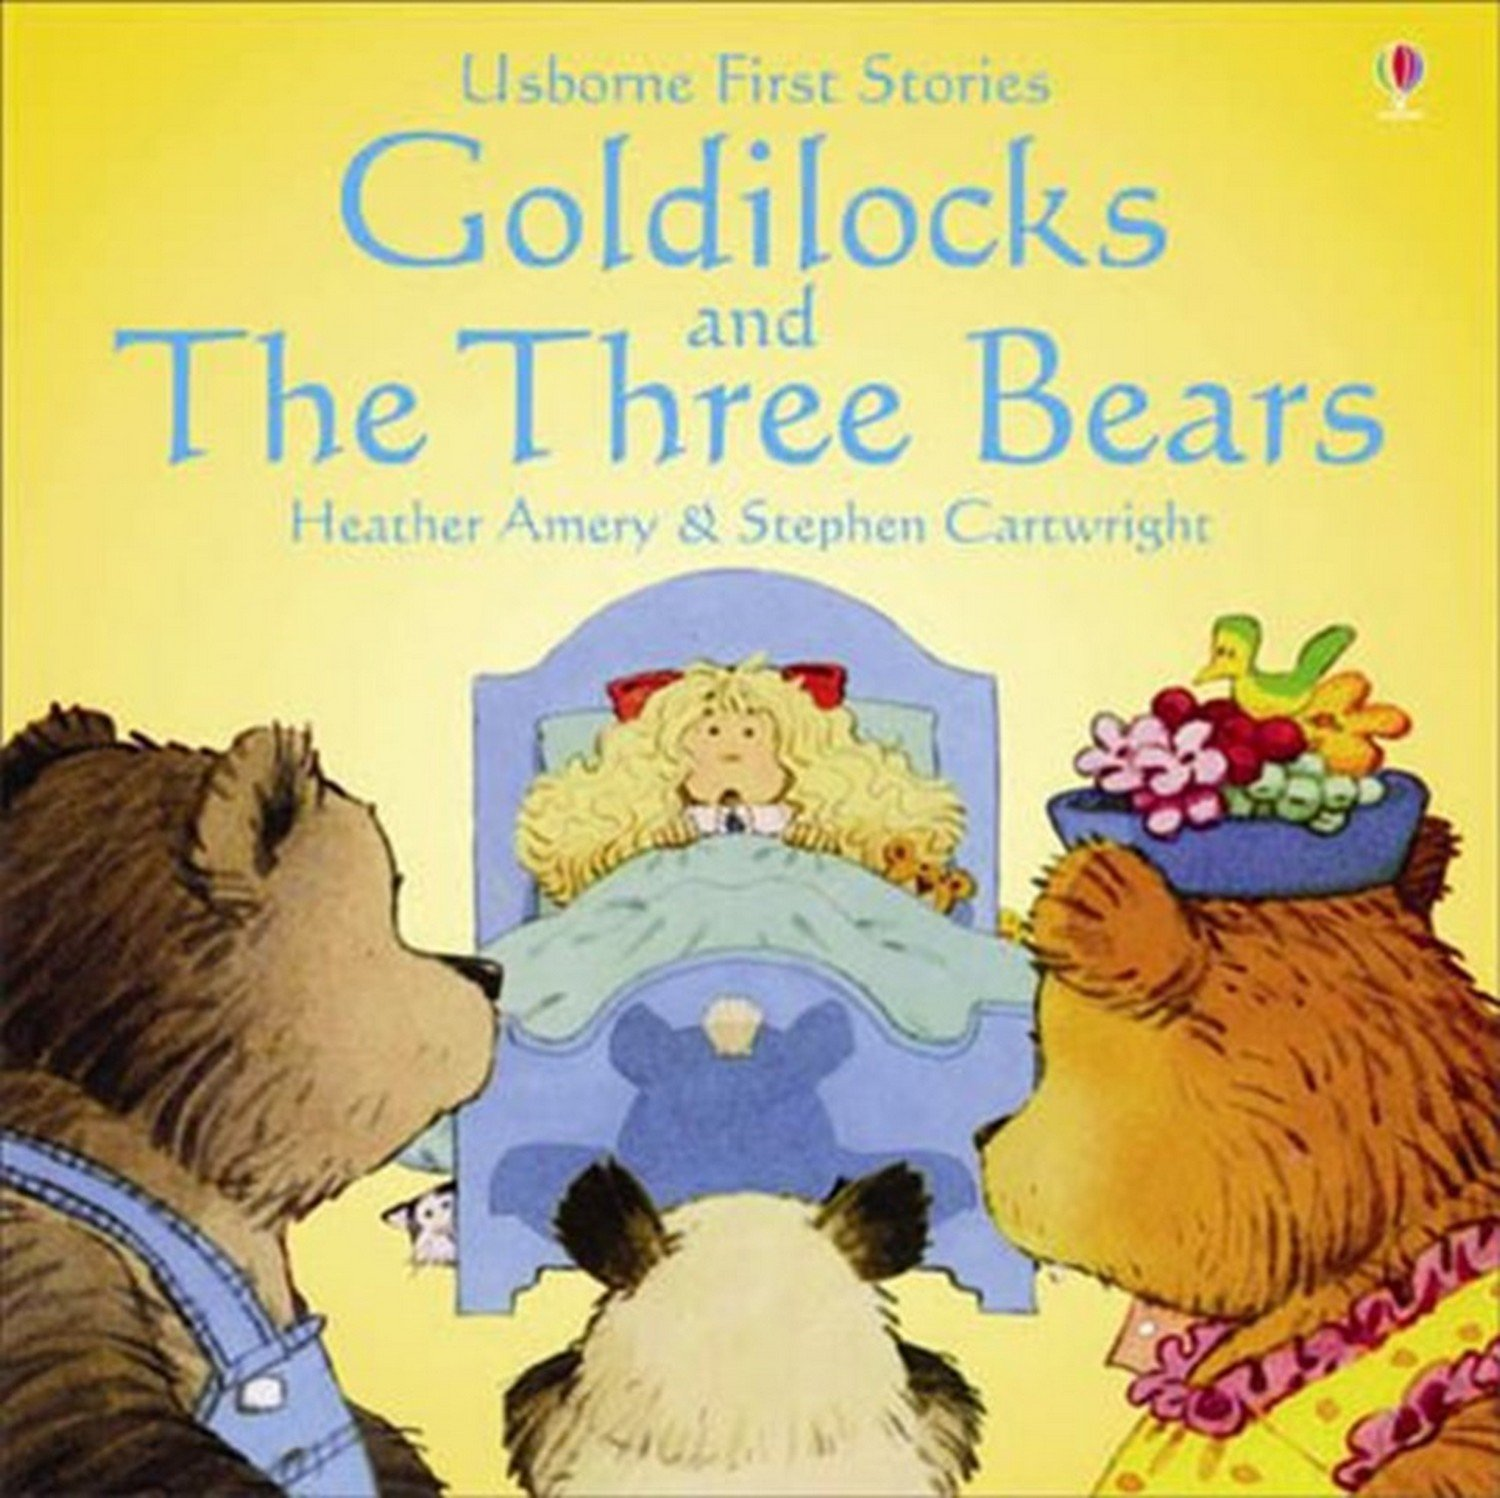 Uncategorized And The Three Bears goldilocks and the three bears heather amery 9780746058381 amazon com books